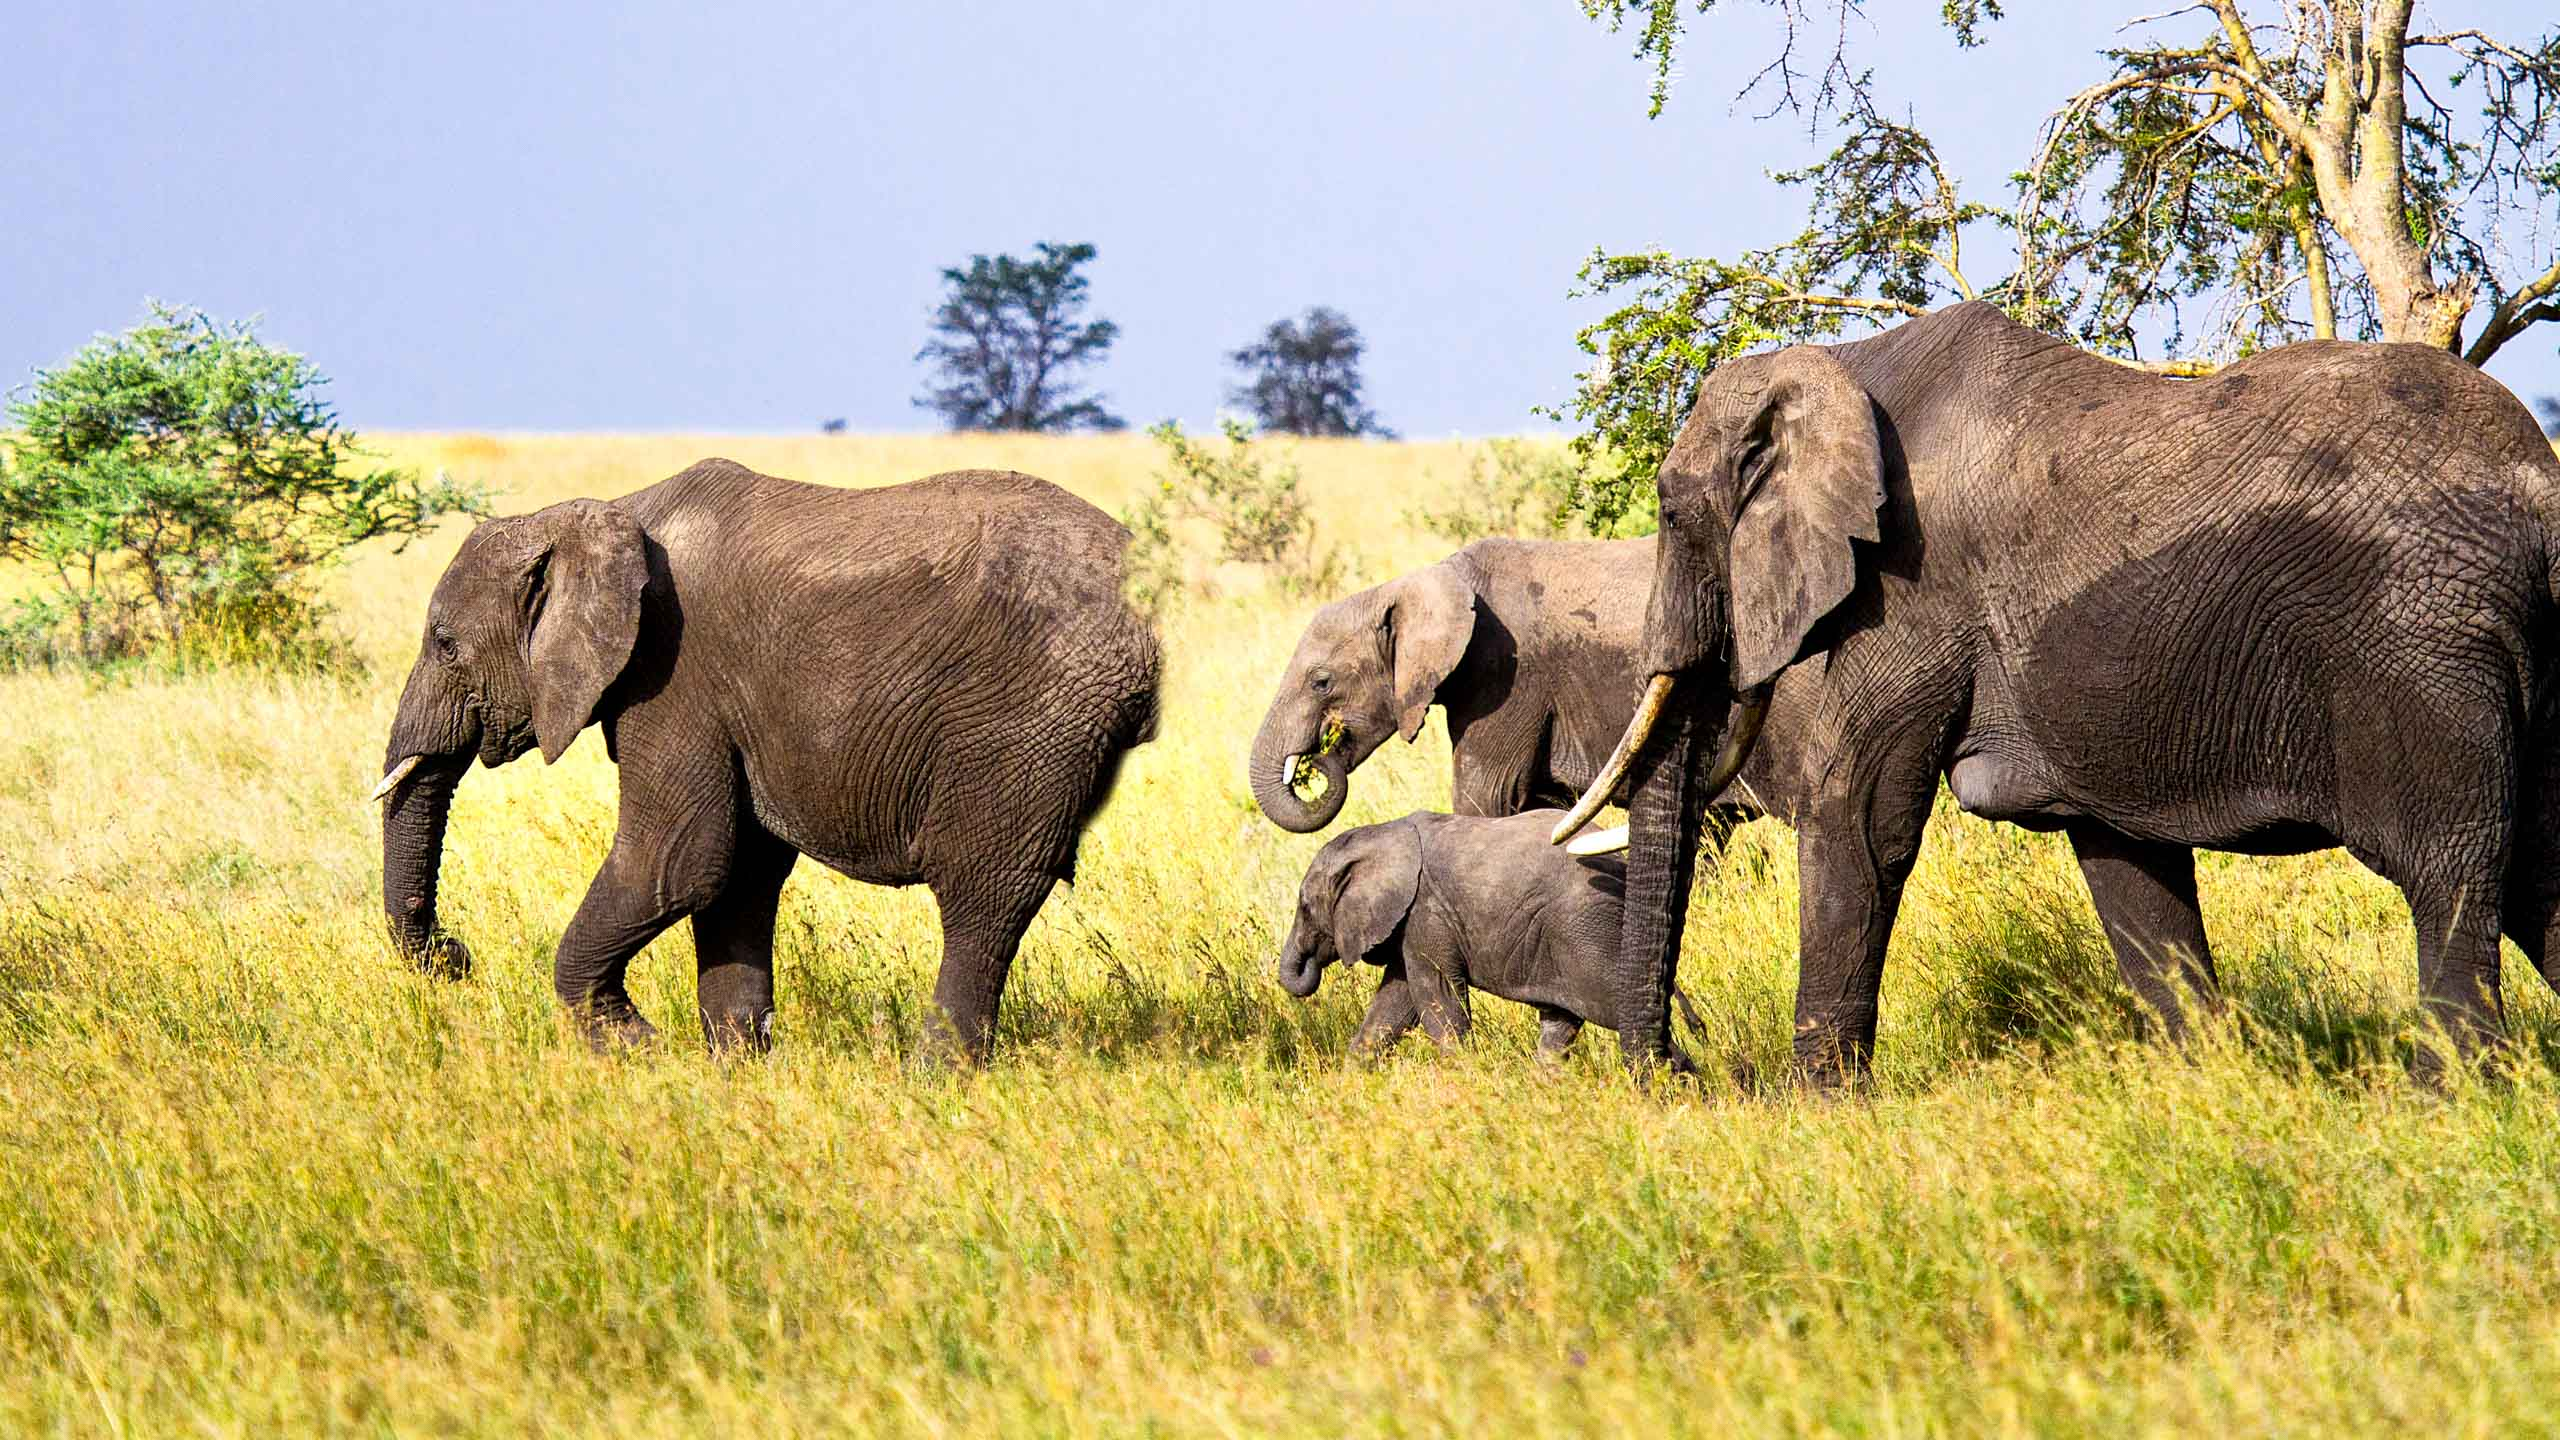 Elephant group walking in Tanzania